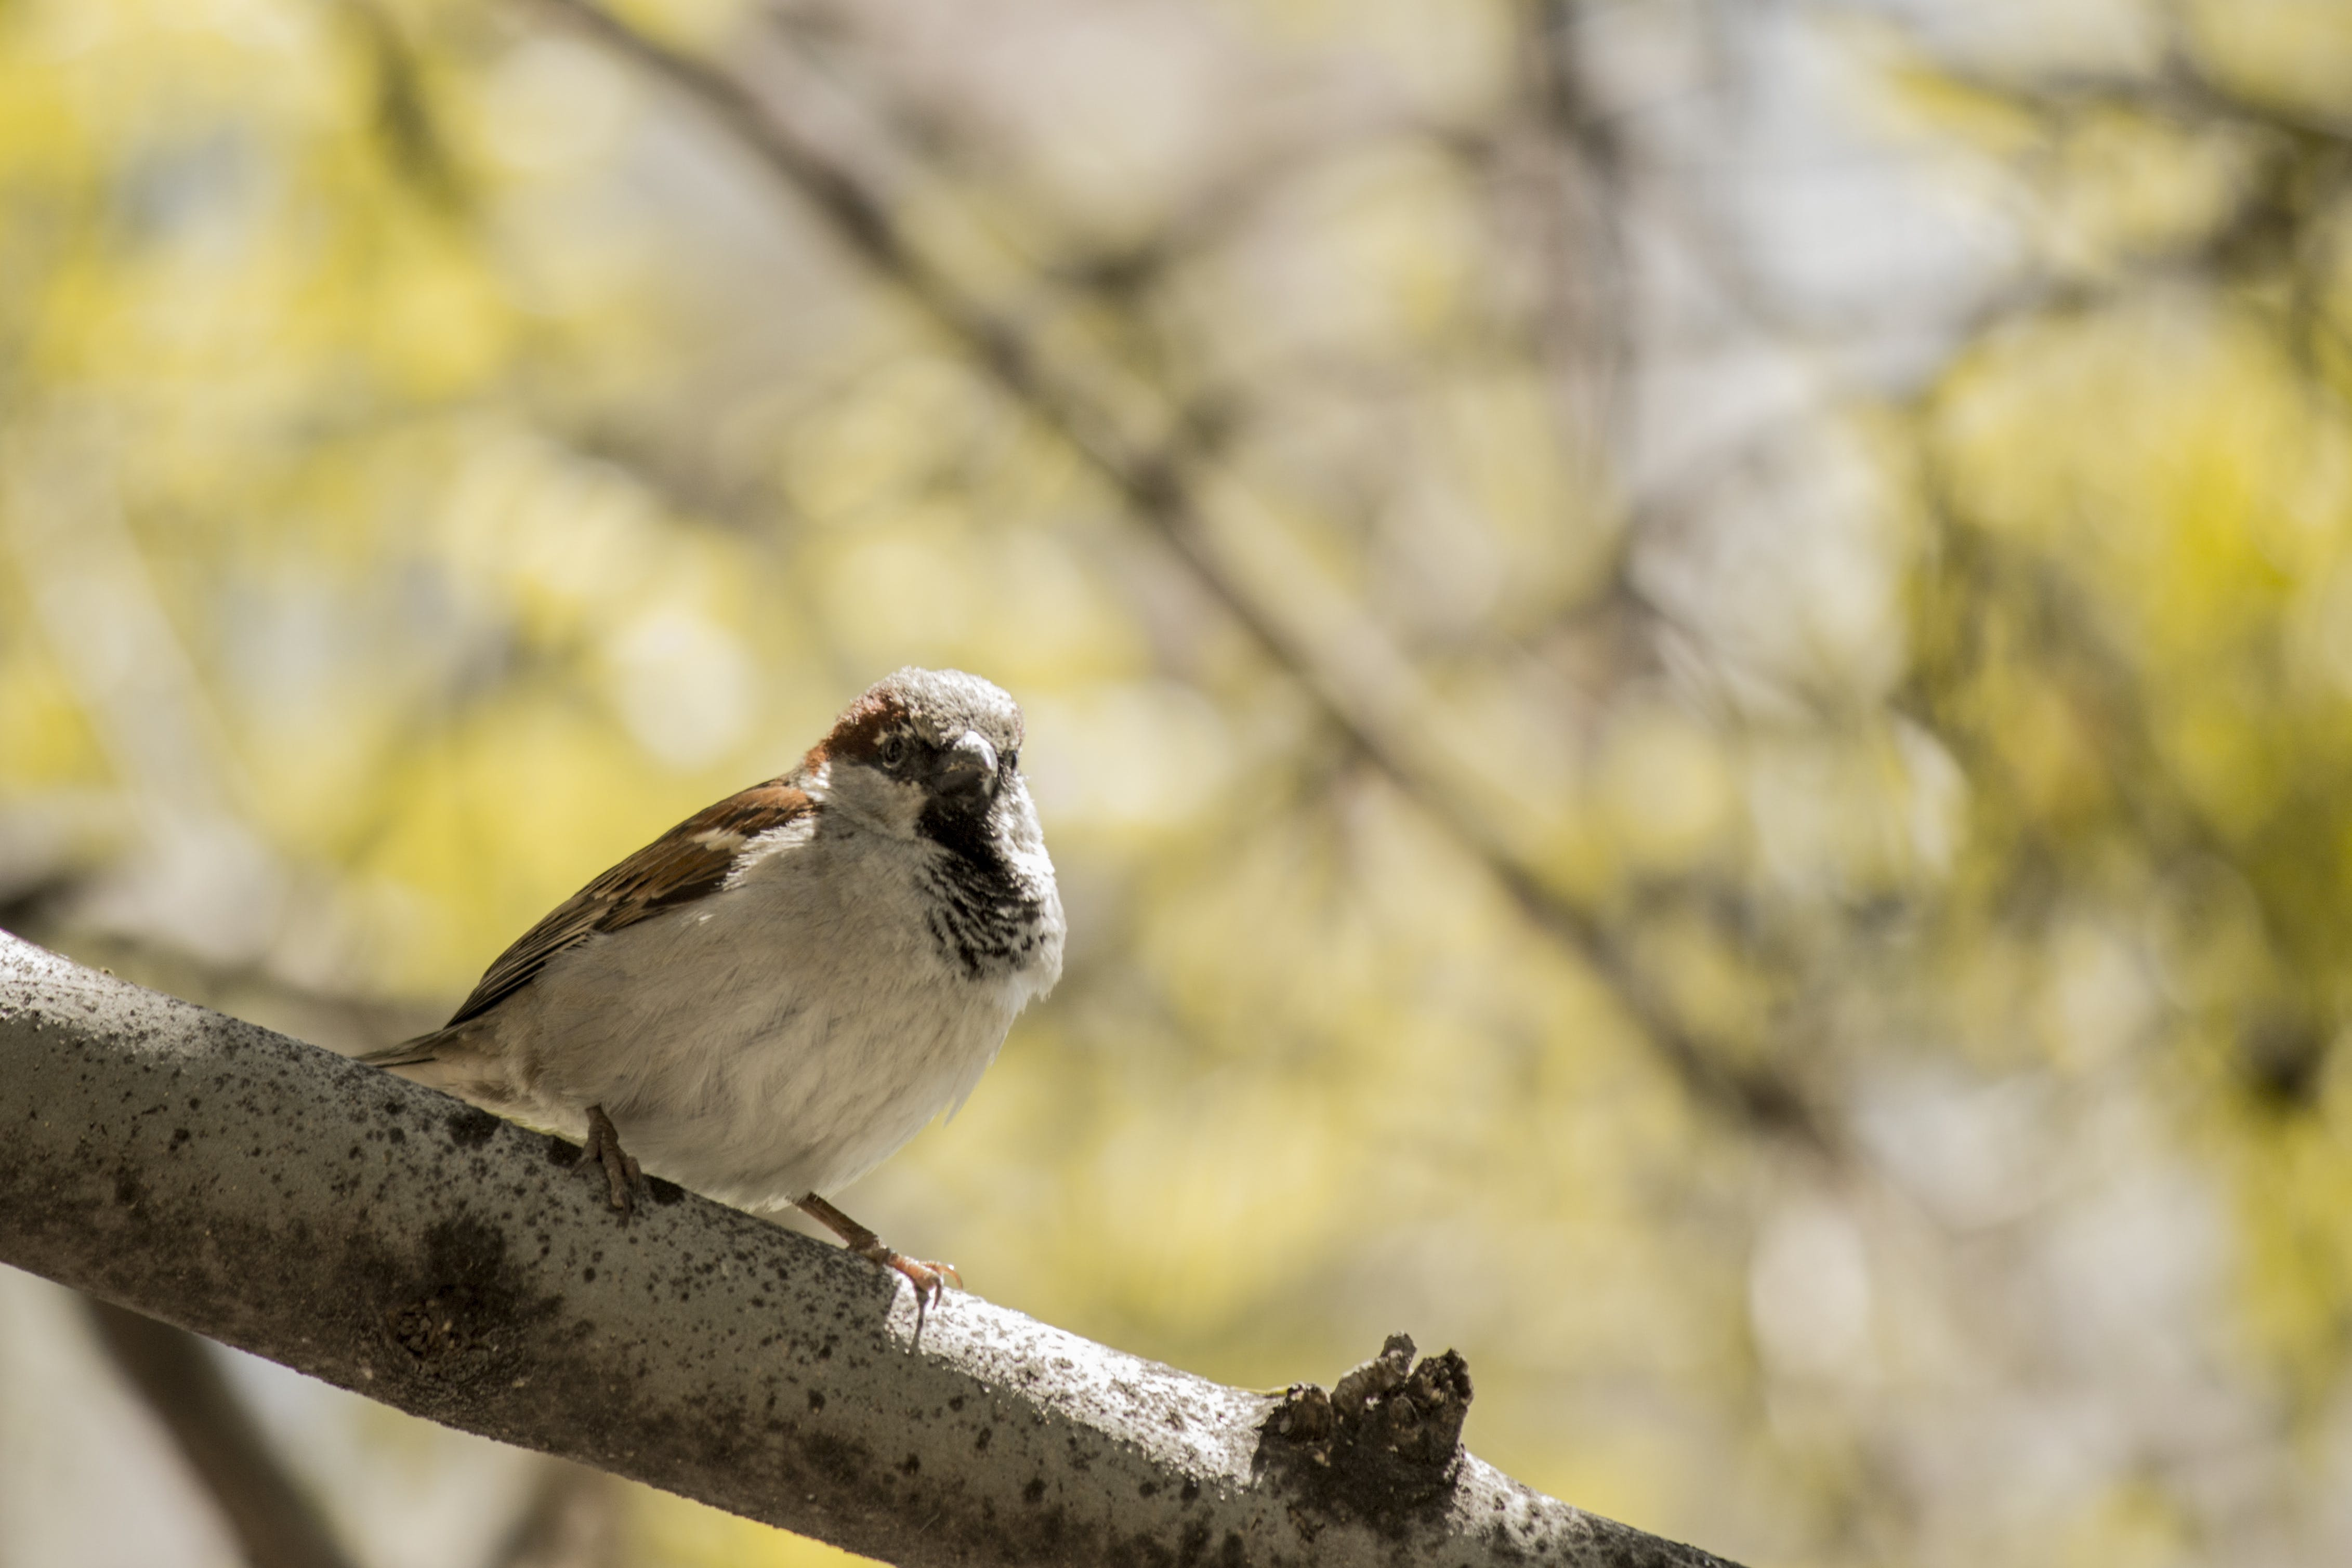 Brown and White Bird